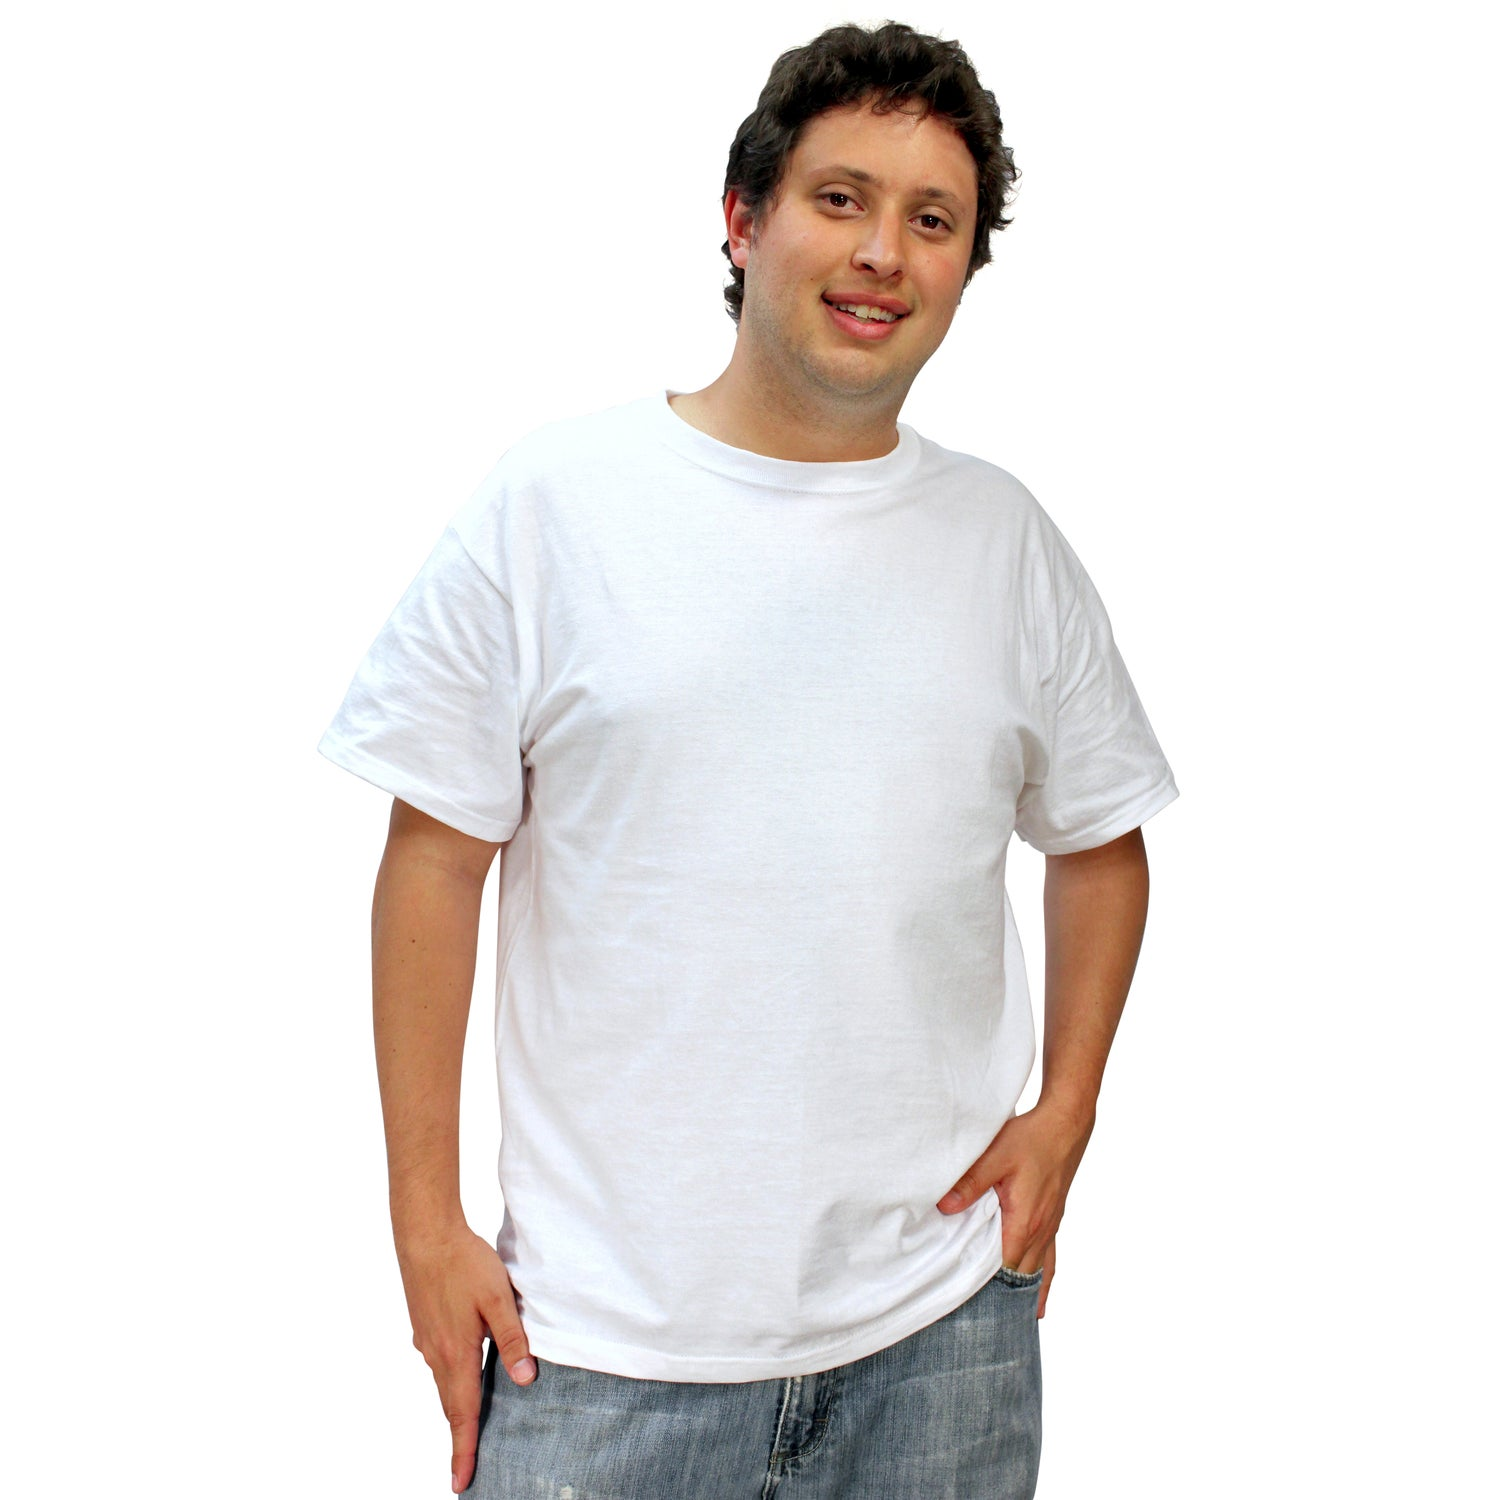 Fruit of the loom heavy cotton t shirt white 100 for Custom cotton t shirts